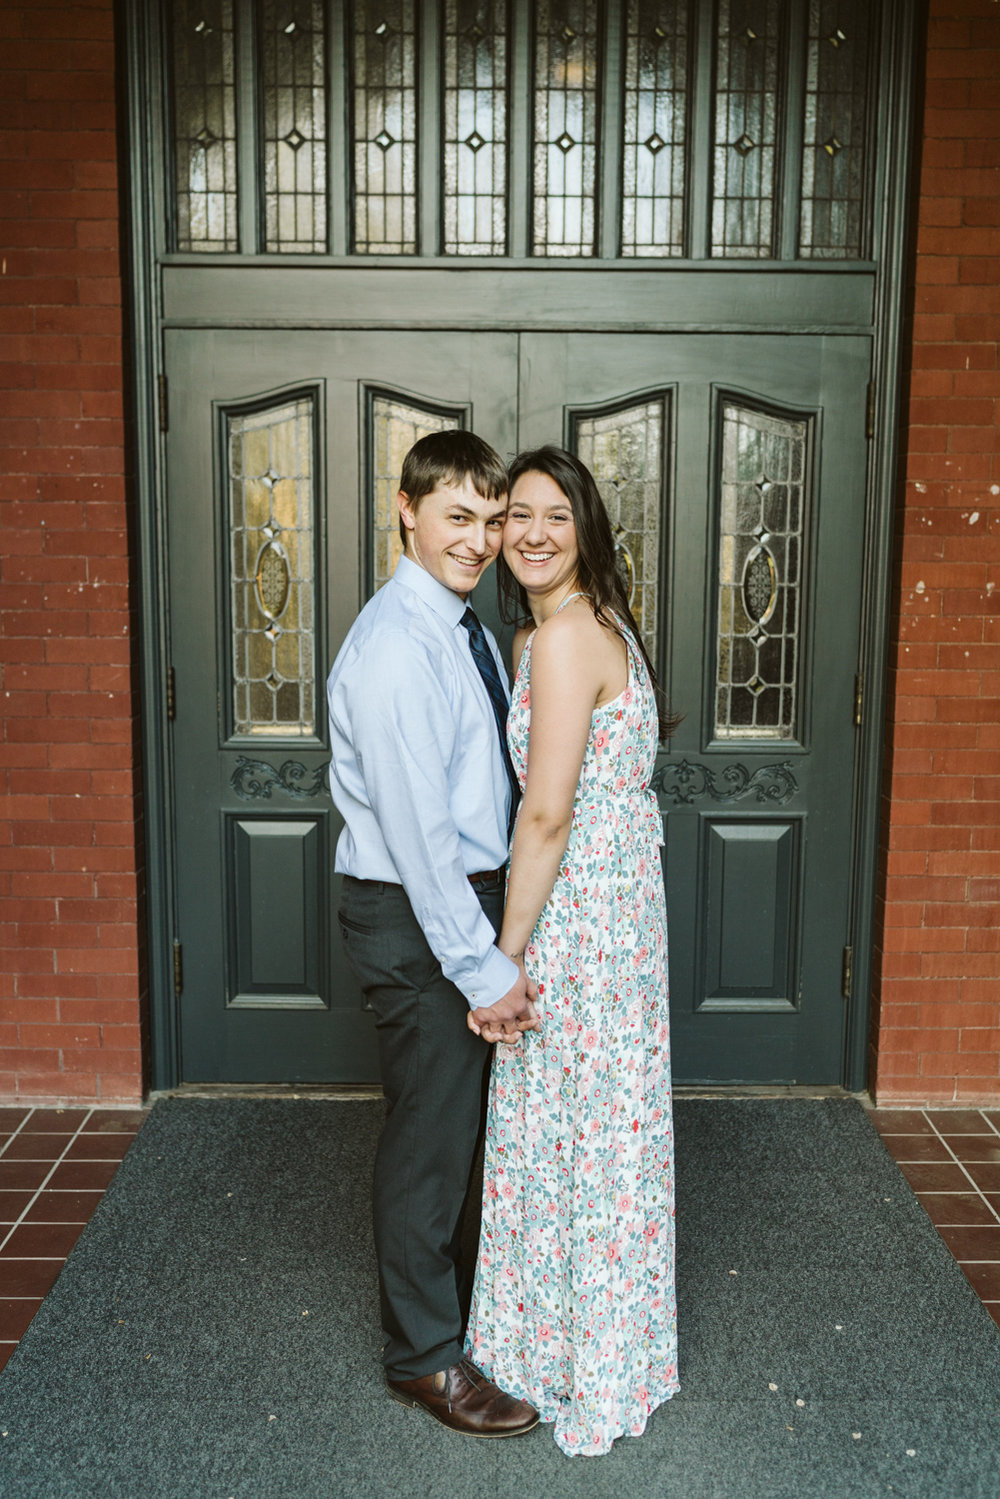 April Yentas Photography - Libby & James engaged-3.jpg